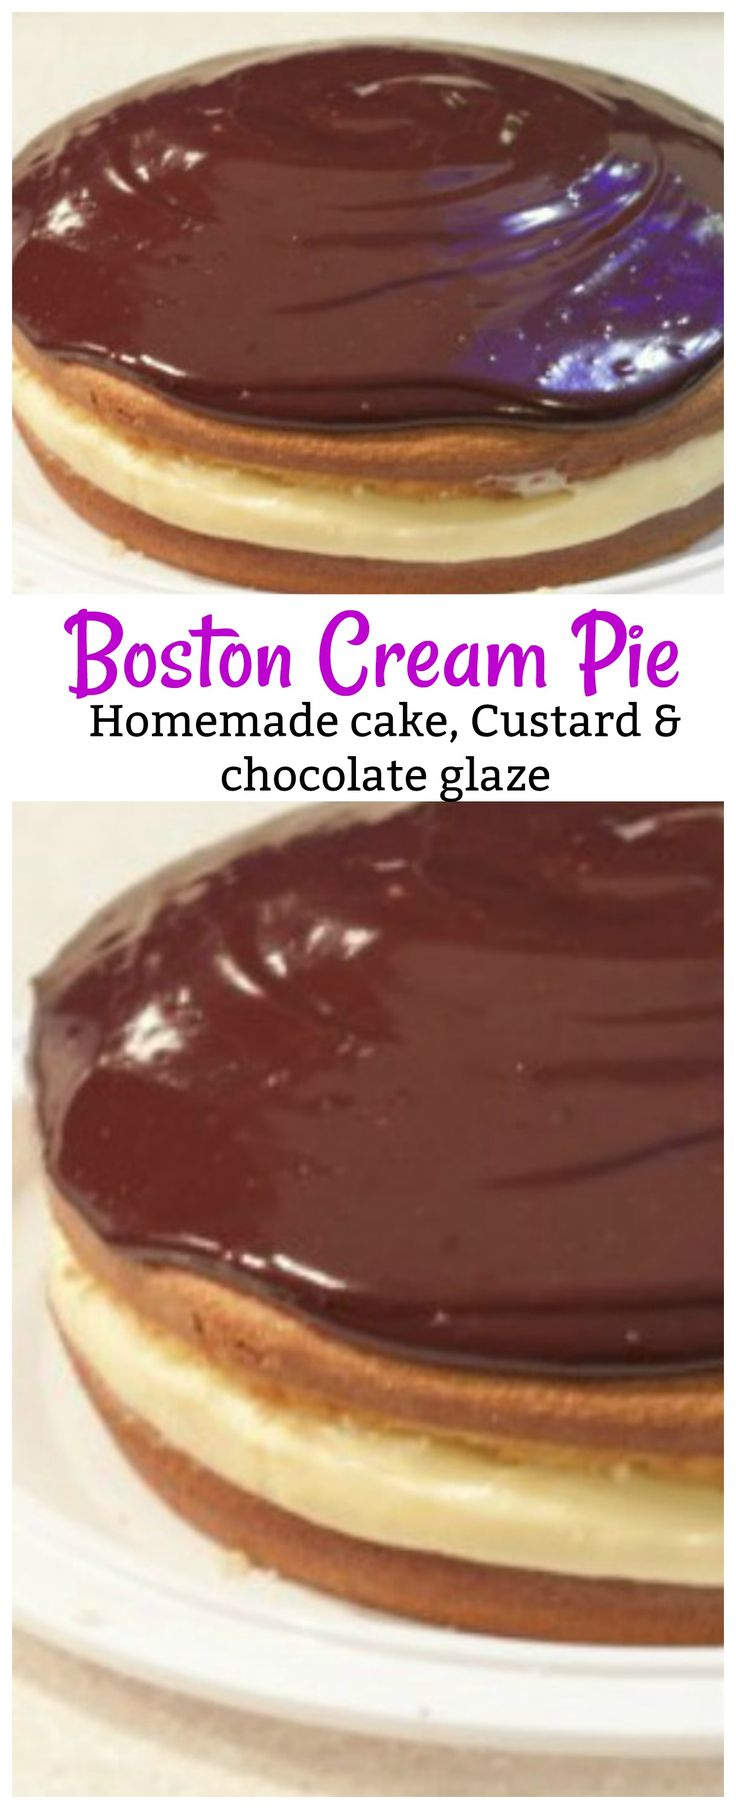 This Boston cream pie is the BEST one you will ever eat and make! With homemade vanilla custard in the middle and a chocolate glaze on top this will be your go to cake for special occasions! Boston cream Pie made with homemade cake, homemade vanilla custard and homemade chocolate glaze will sure to be added to your recipe box for when you need an amazing dessert recipe.